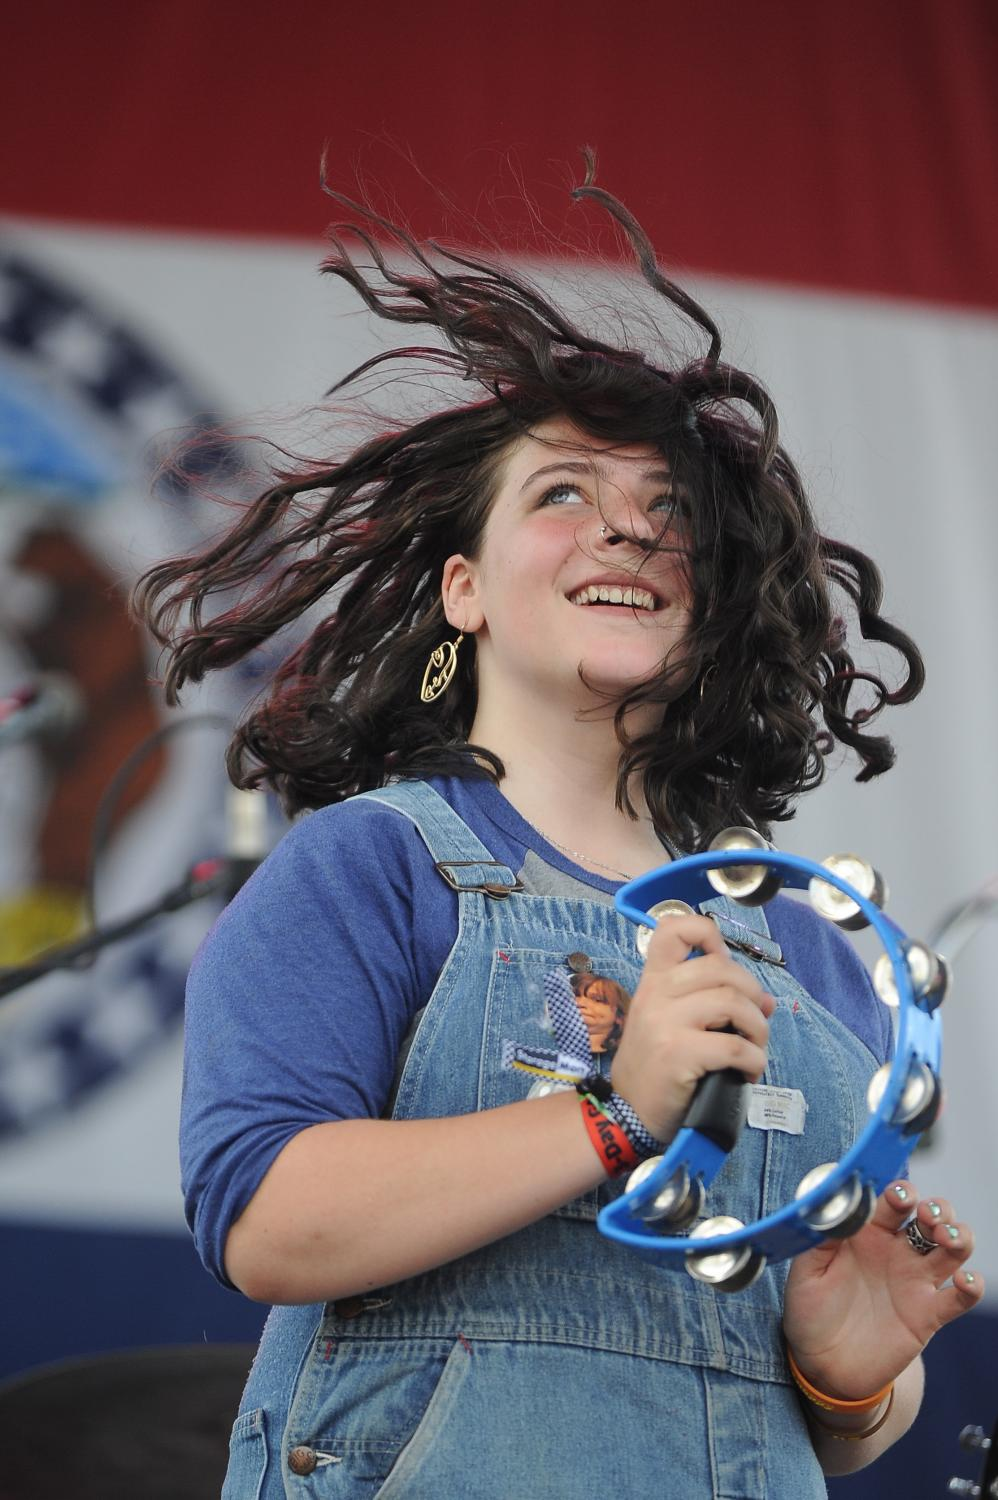 Olivia Burney plays tambourine with The Kay Brothers on Sept. 29, 2019 at the Roots N Blues N BBQ Festival at Stephens Lake Park in Columbia, Missouri. Burney is also a member of the Burney Sisters, a Columbia band that performed earlier in the afternoon